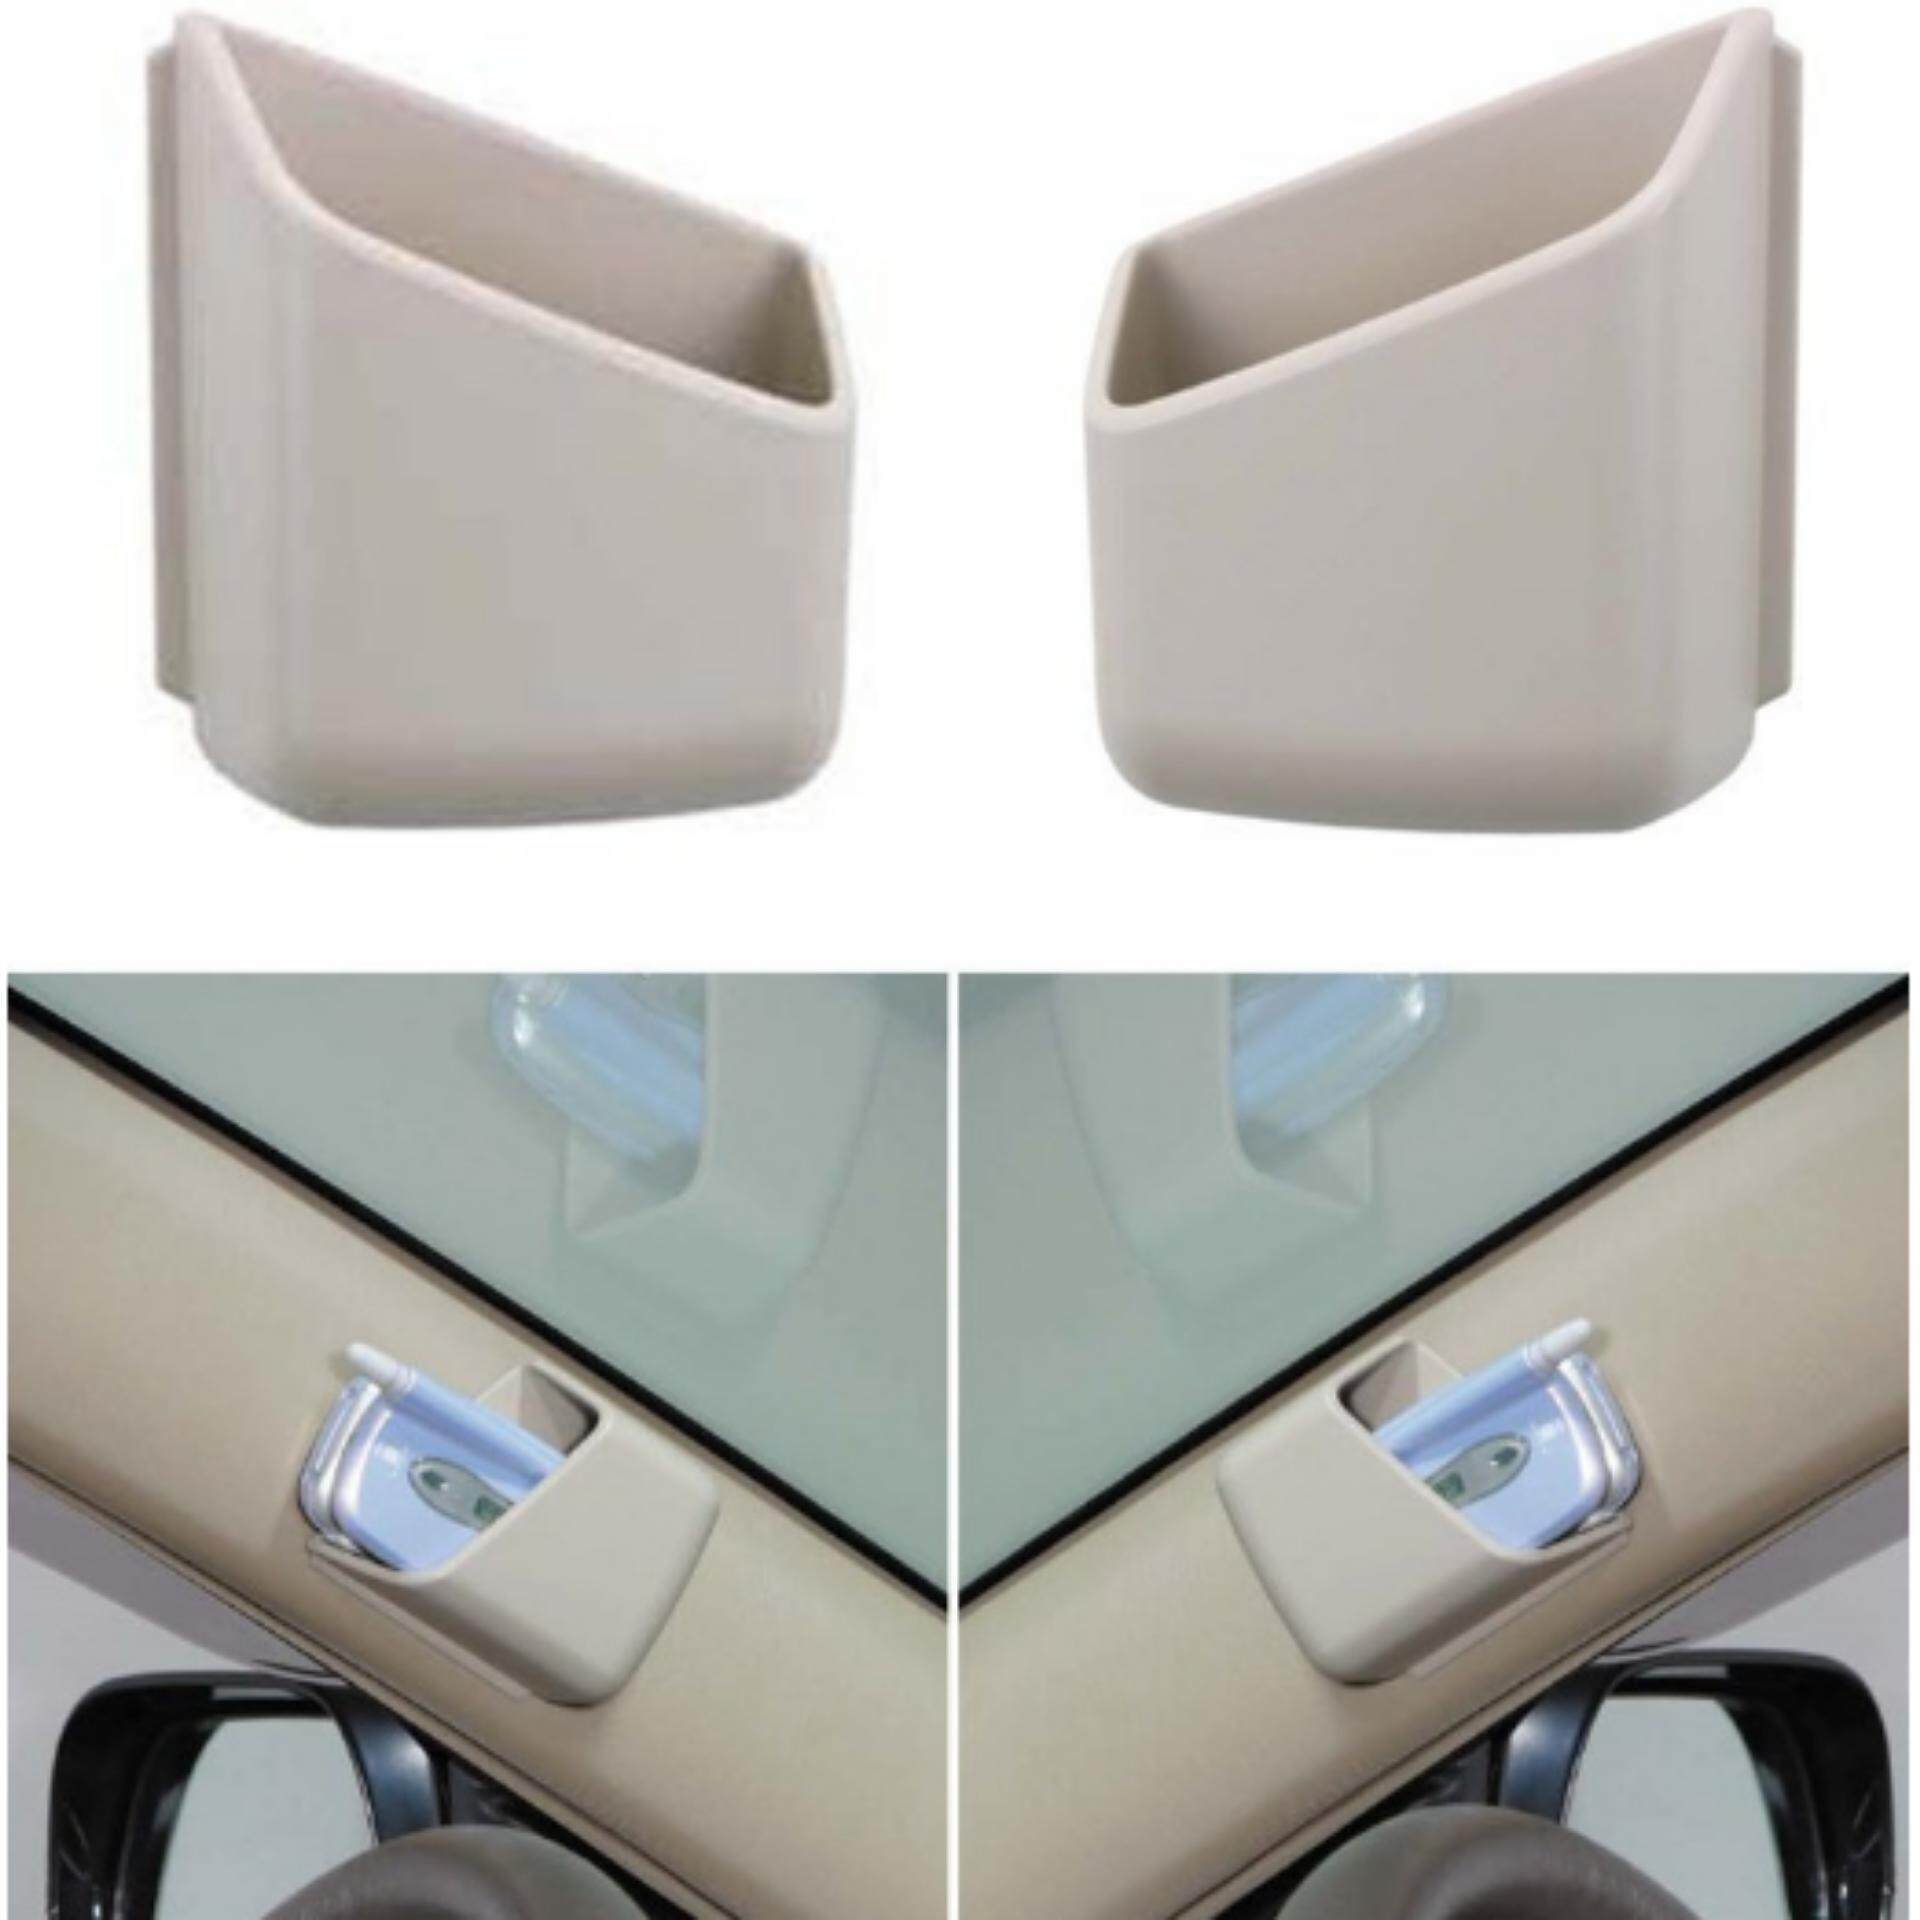 Car Universal Door Storage Box Phone Charger Cradle Pocket Bag Holder Beige